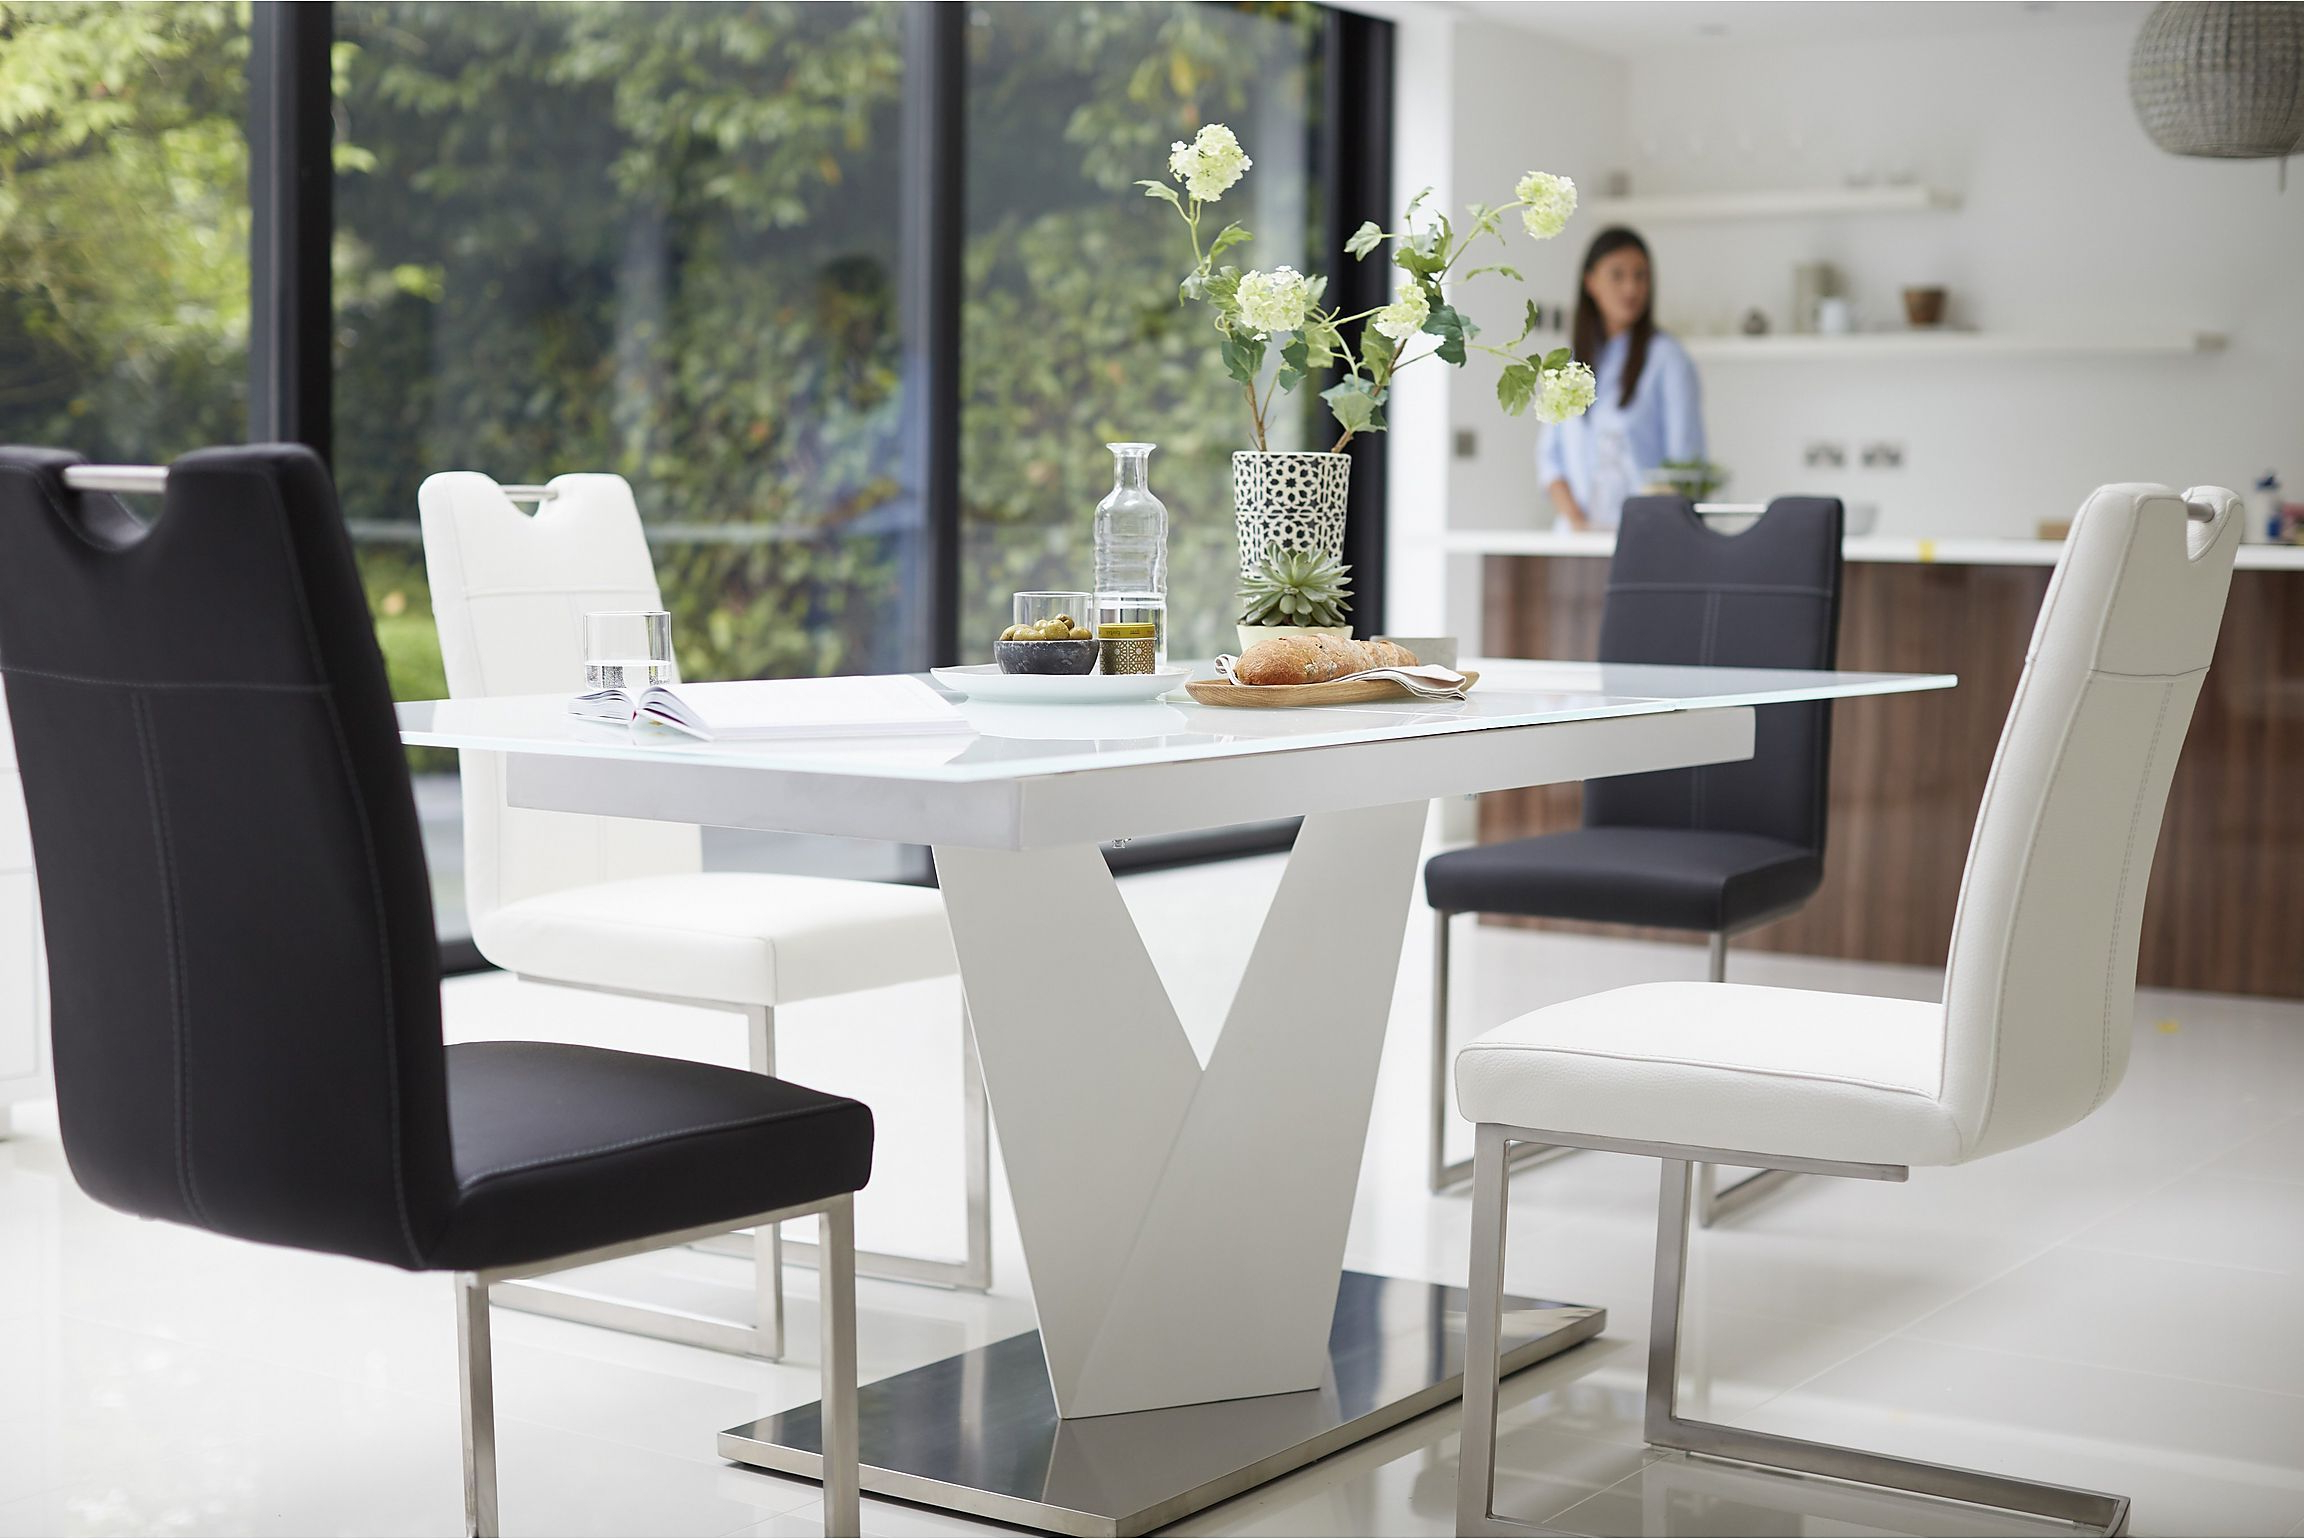 Extending Ultra-Modern Dining Table From Habufa Sits Up To 8 pertaining to Well-known Modern Glass Top Extension Dining Tables In Stainless